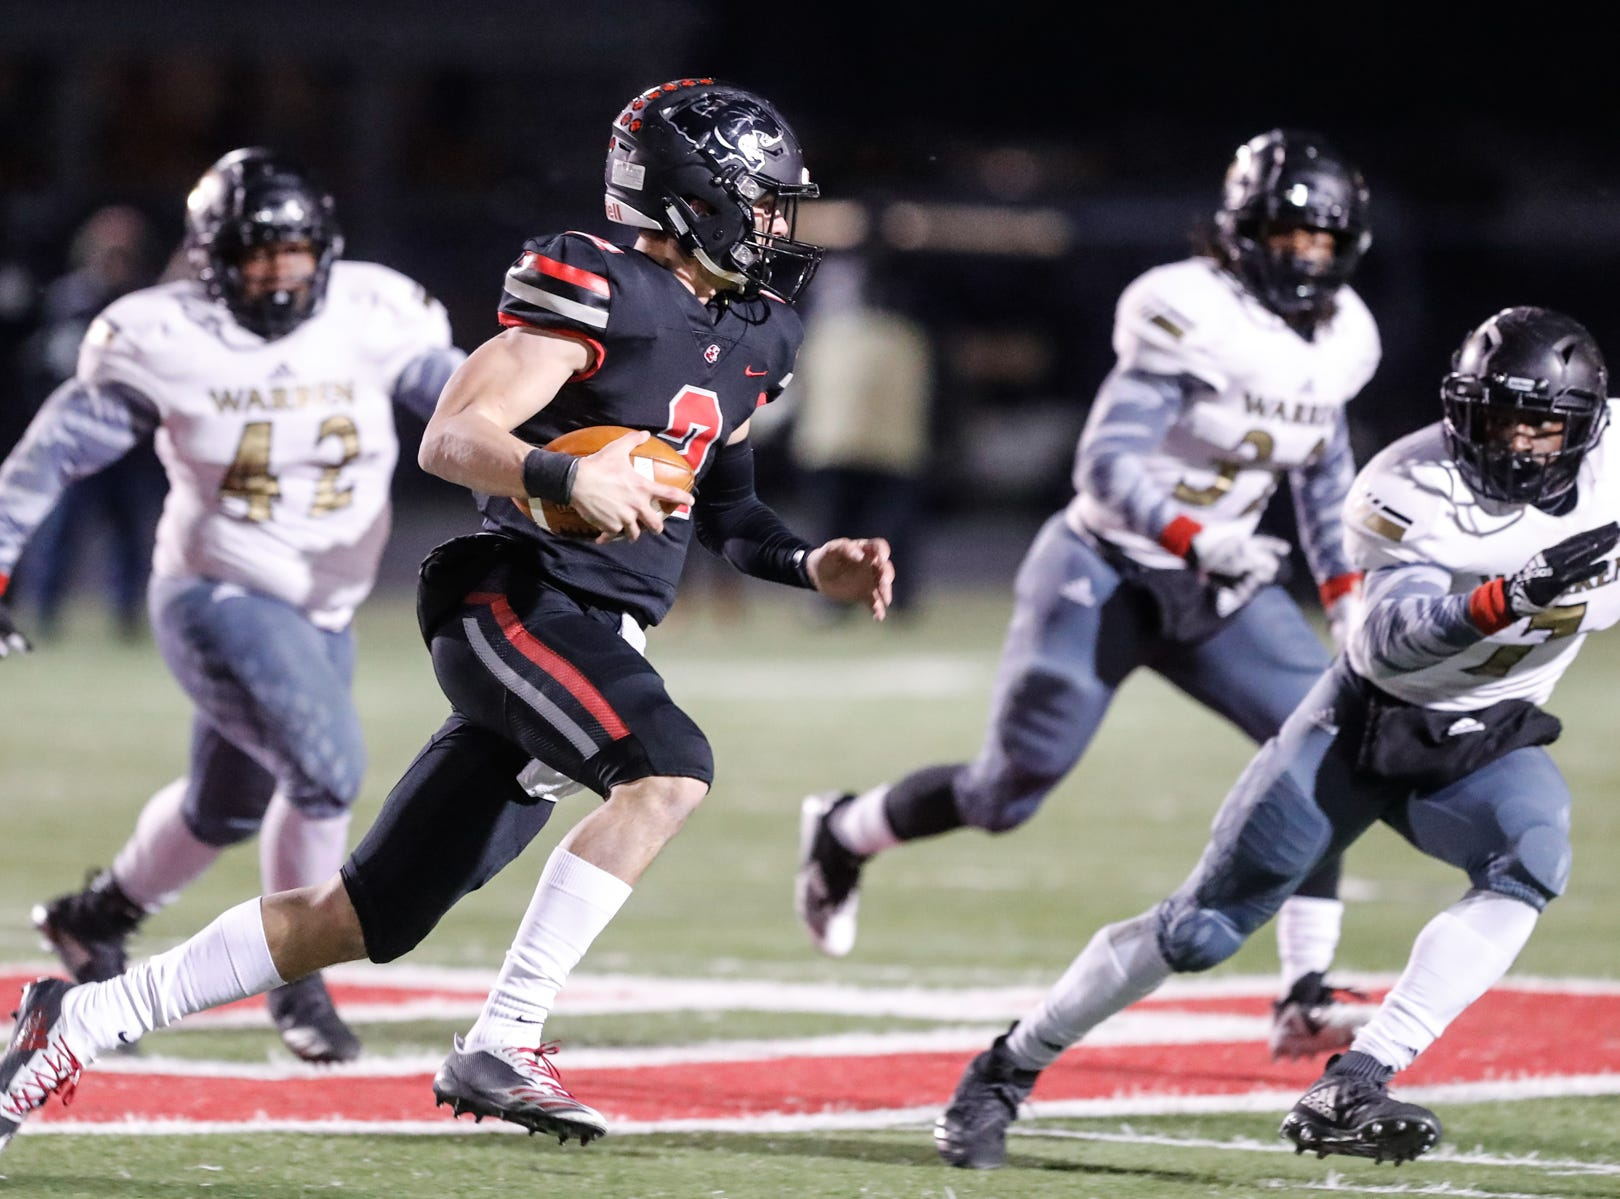 The North Central High School Panther's Liam Thompson (2), runs for the end zone during a regional finals game against the Warren Central High School Warriors at North Central High School on Friday, Nov. 9, 2018.